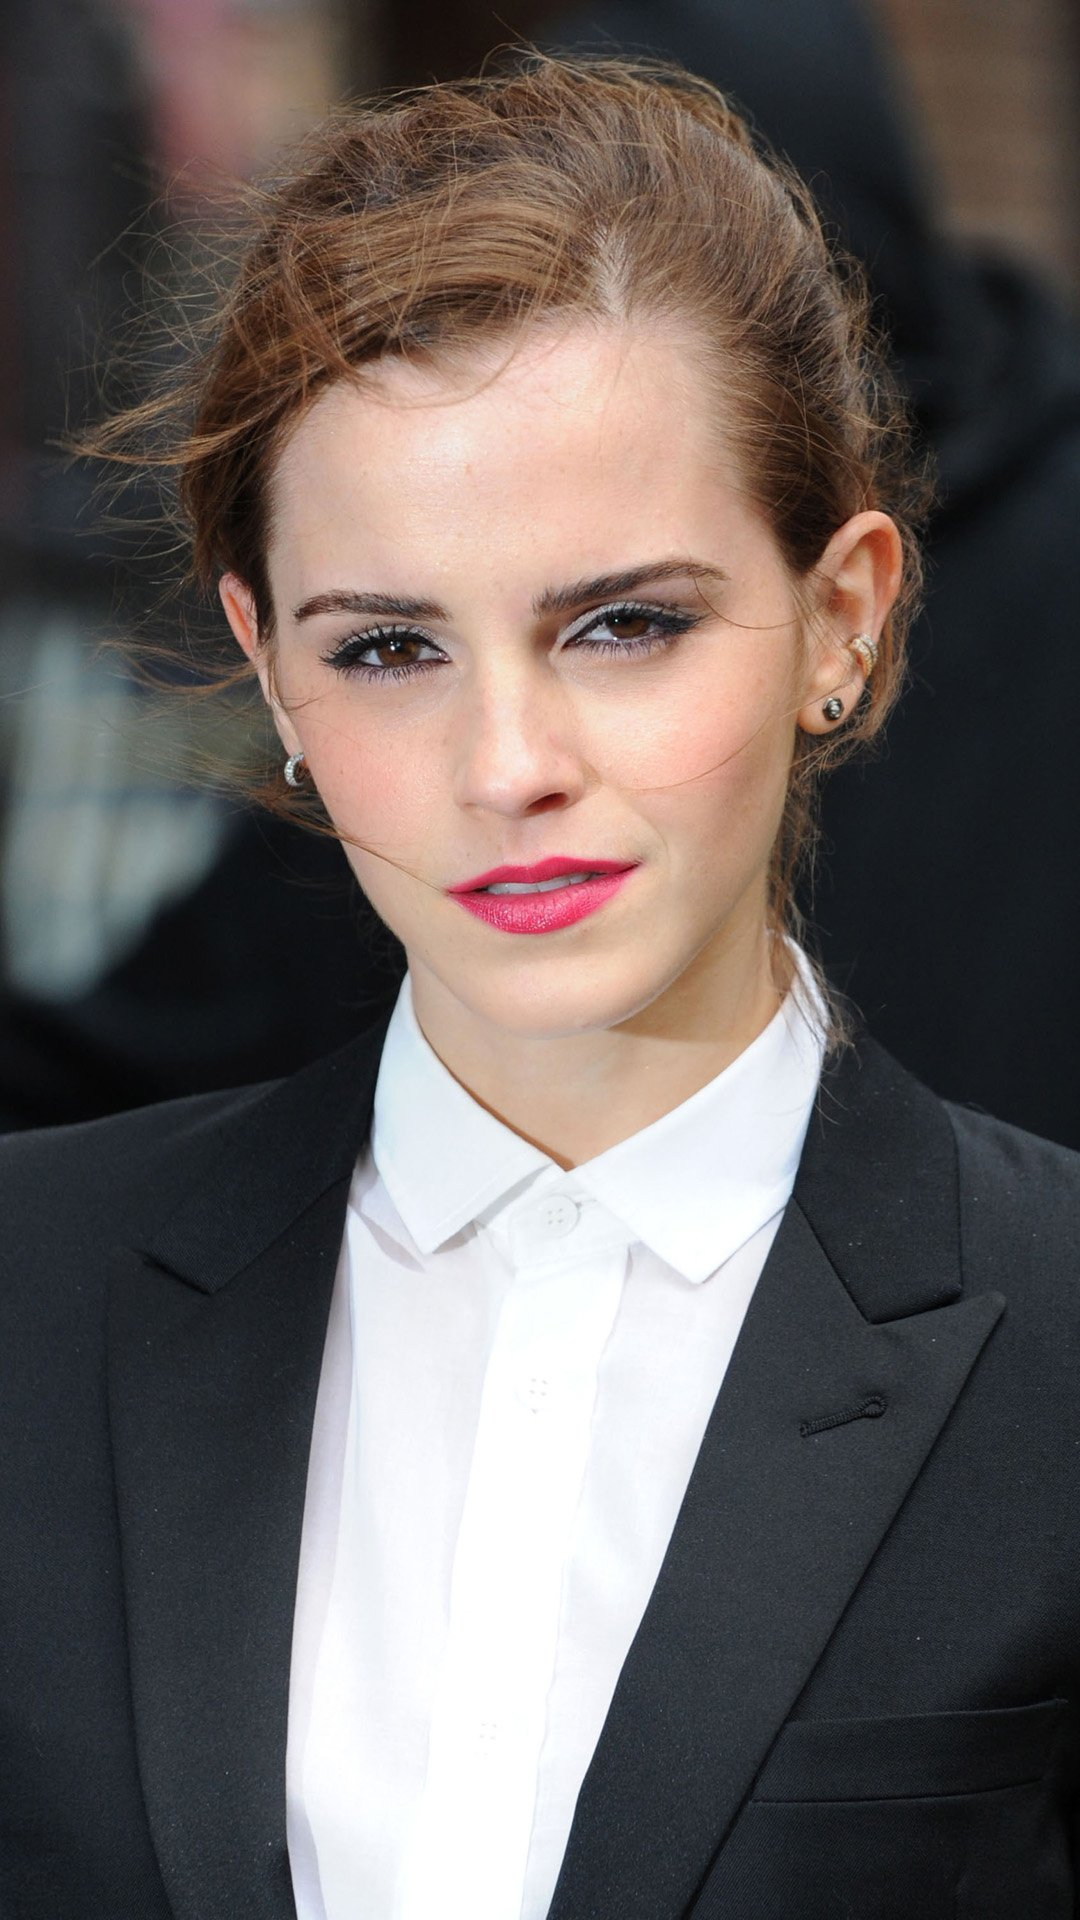 Emma Watson Suit Dress iPhone Wallpaper